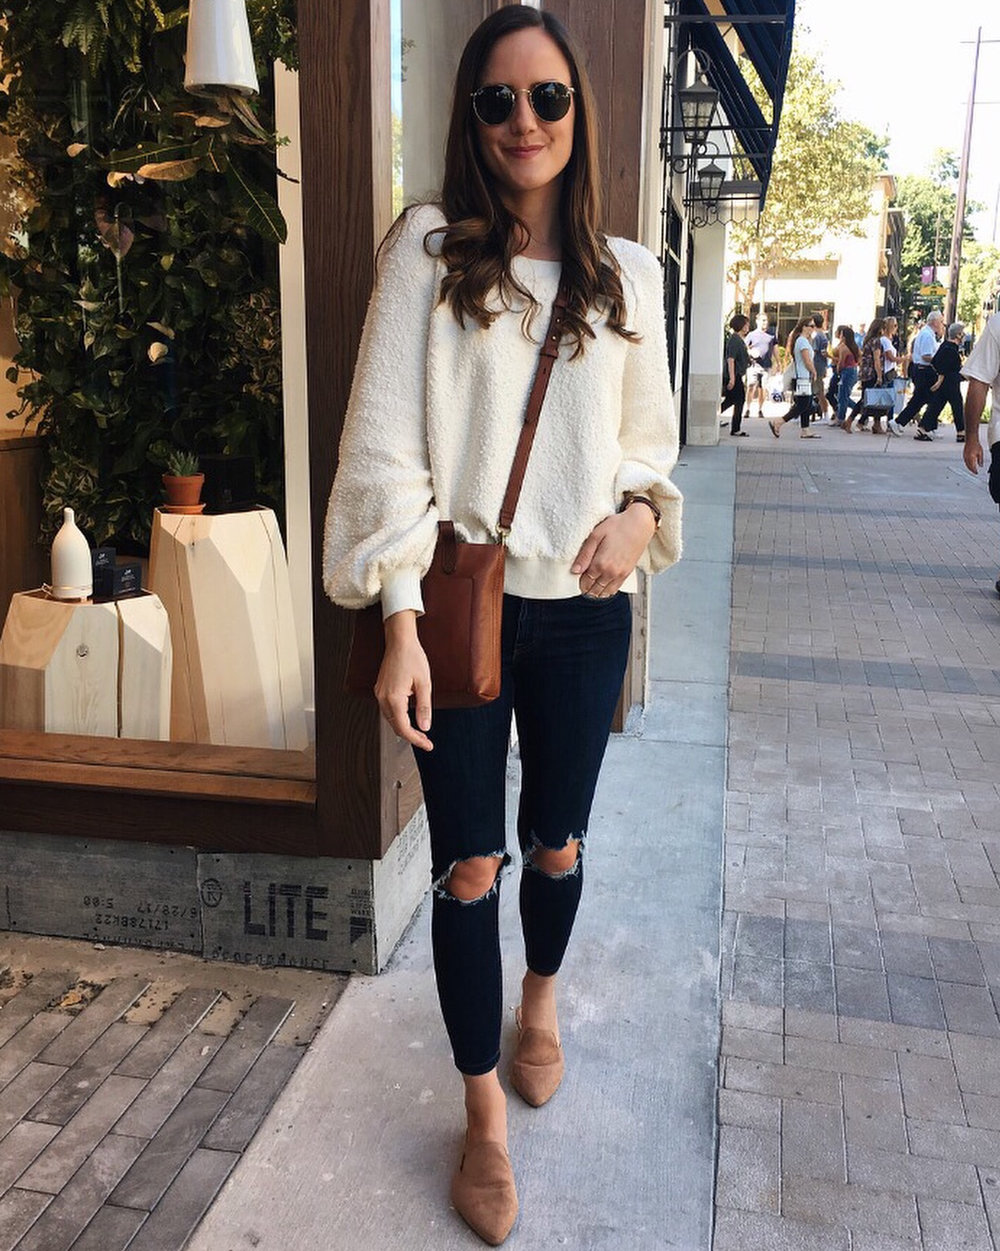 Shop the Look Below.  Free People Pullover  |  Free People Jeans  |  Madewell Tote  |  Ray-Ban Sunglasses